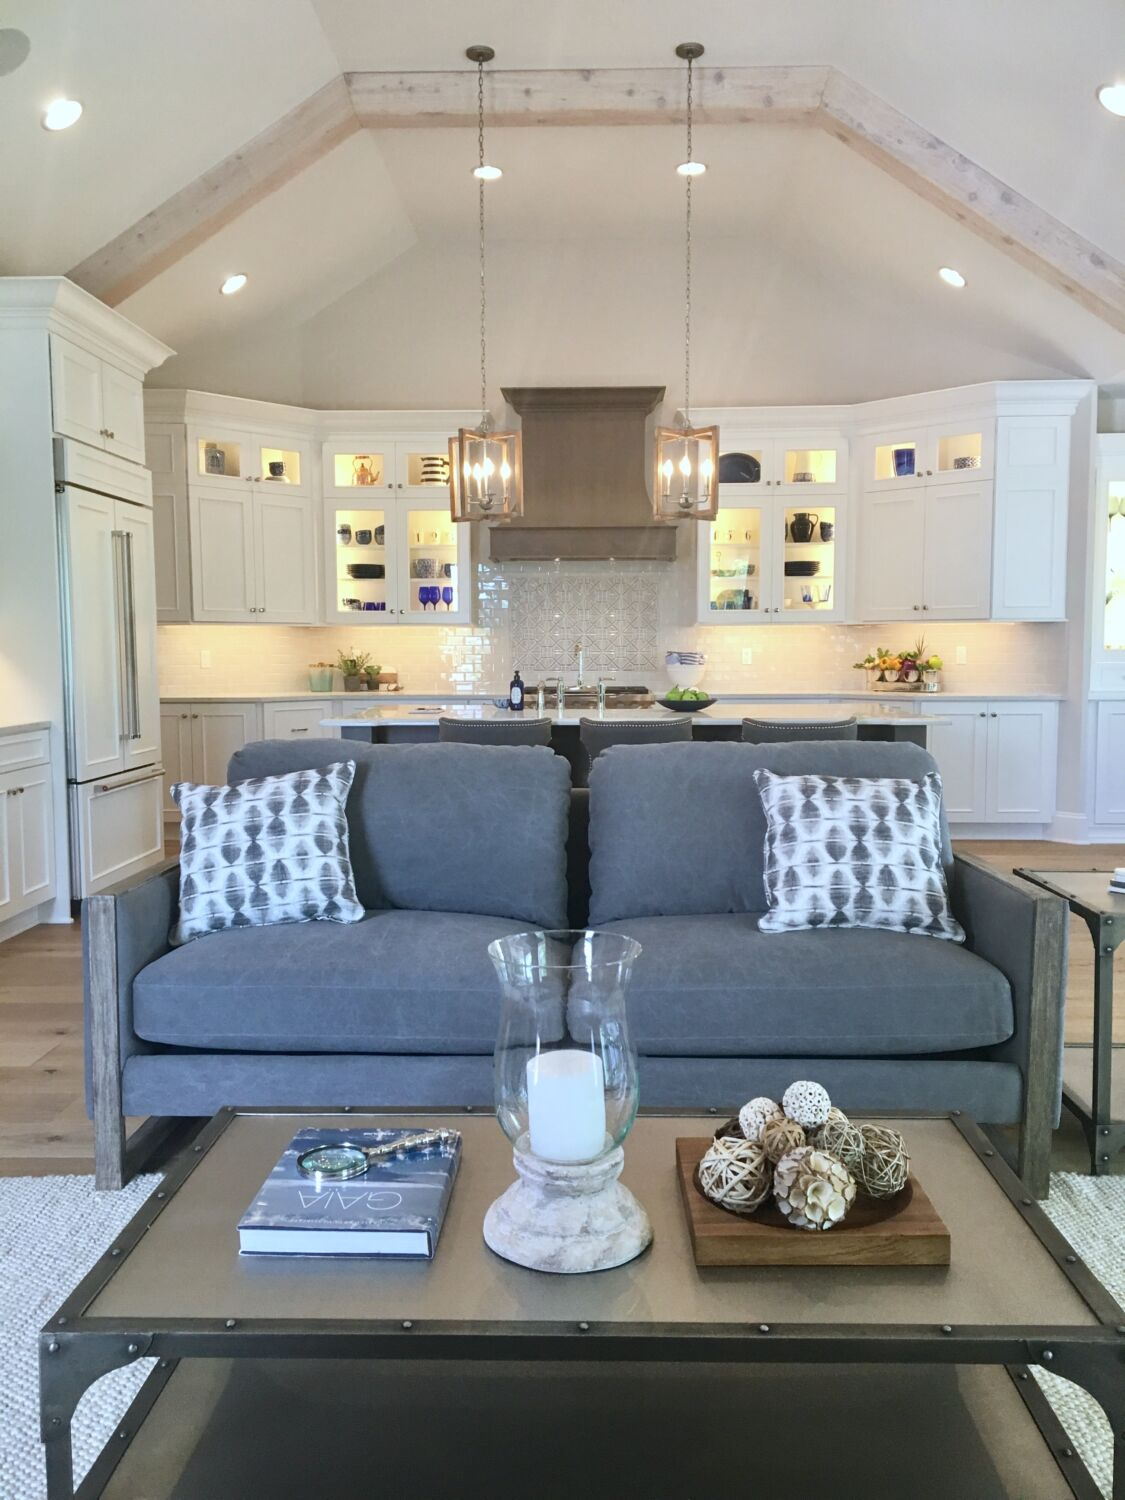 Greenpoint Trail Pittsford Ny Model Furniture Reveal With